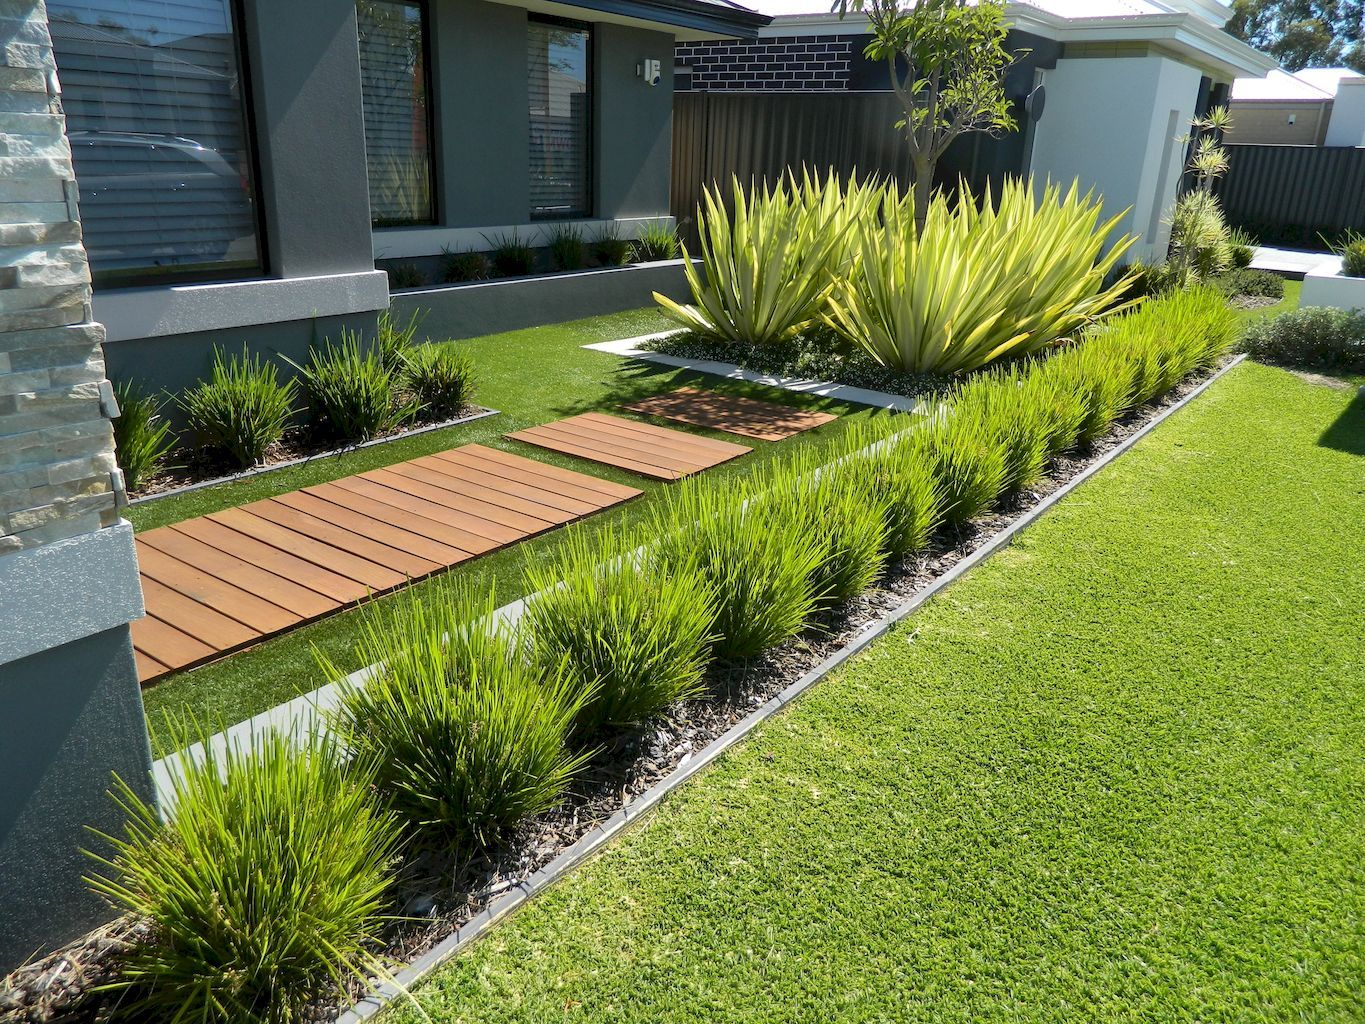 40 beautiful front yard landscaping ideas front garden on modern front yard landscaping ideas id=56132